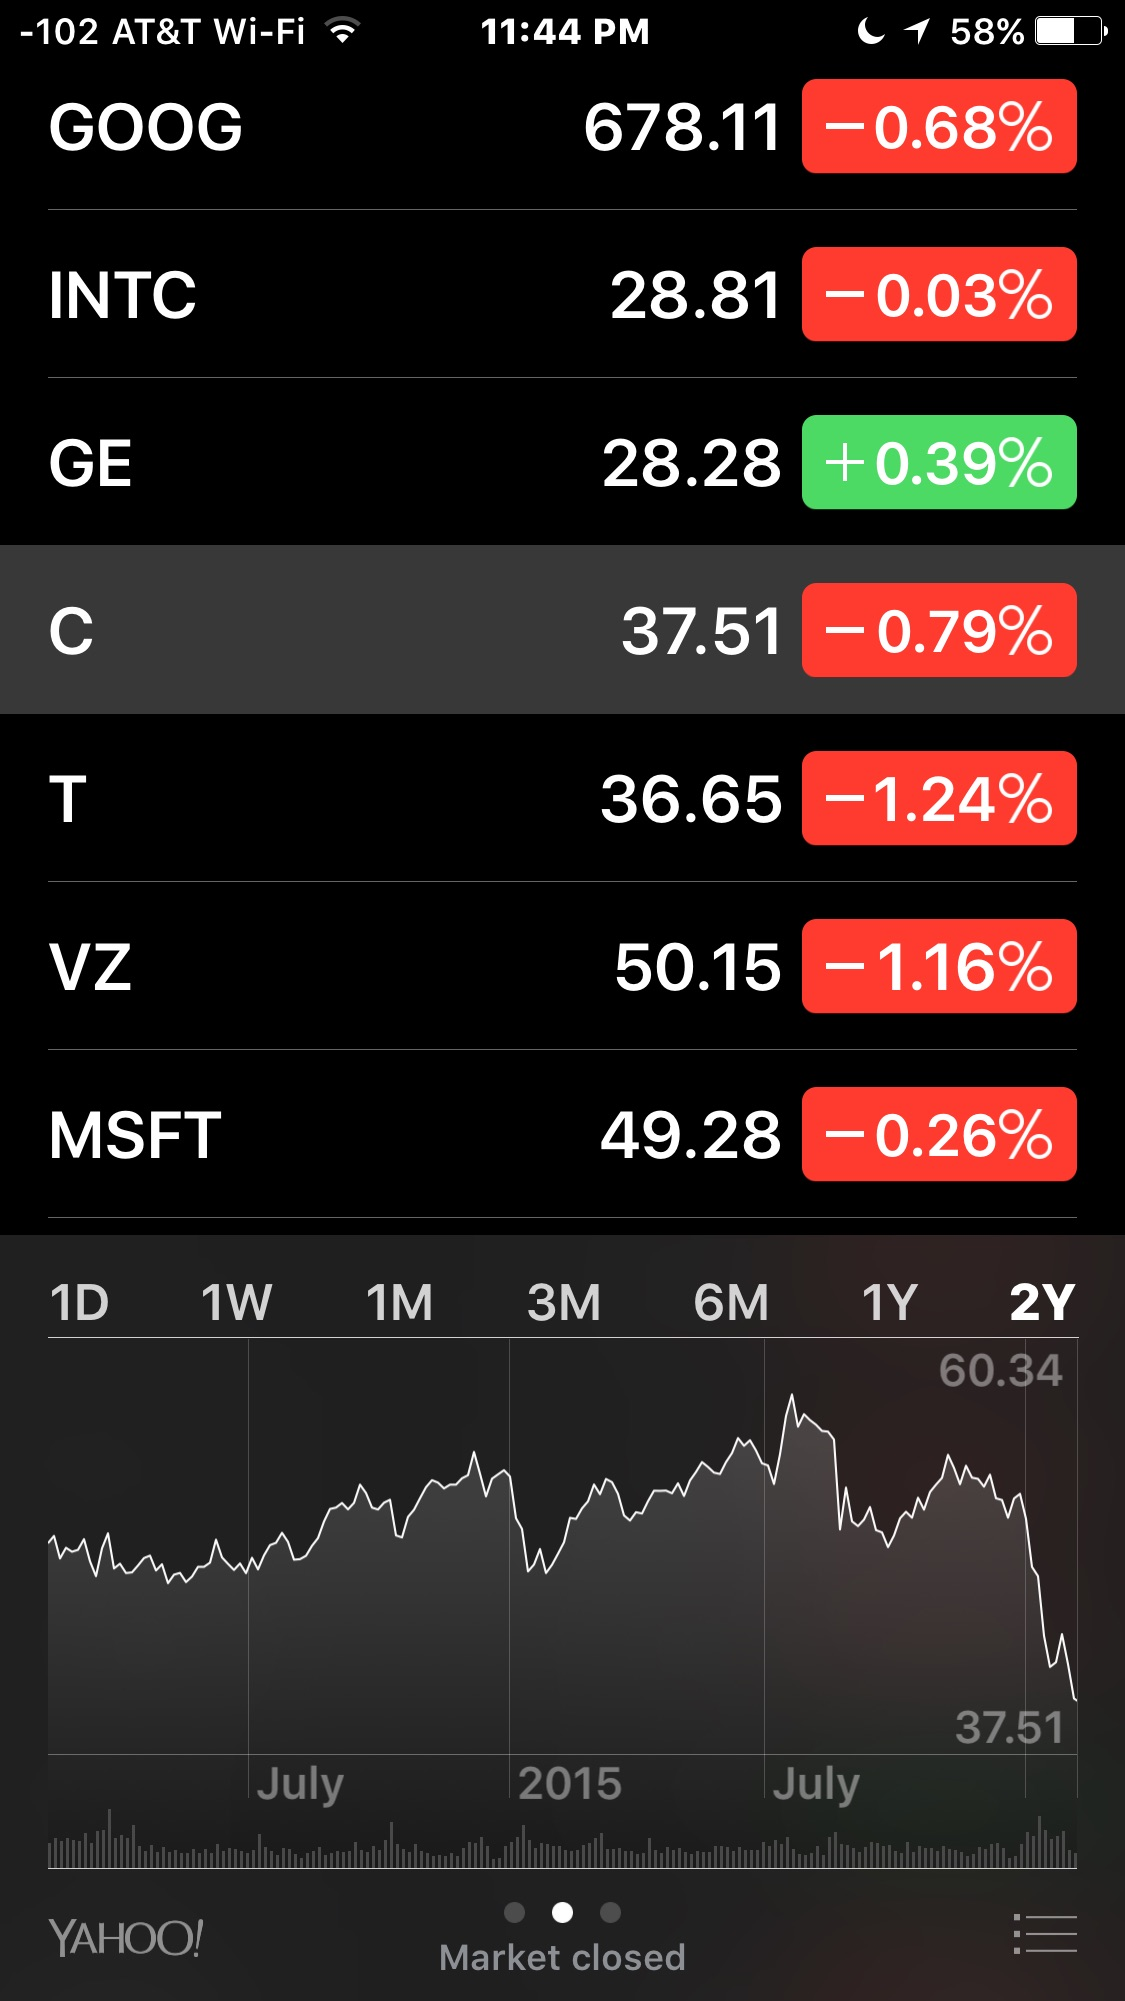 View the long-term performance of stocks and markets in the iPhone Stocks app